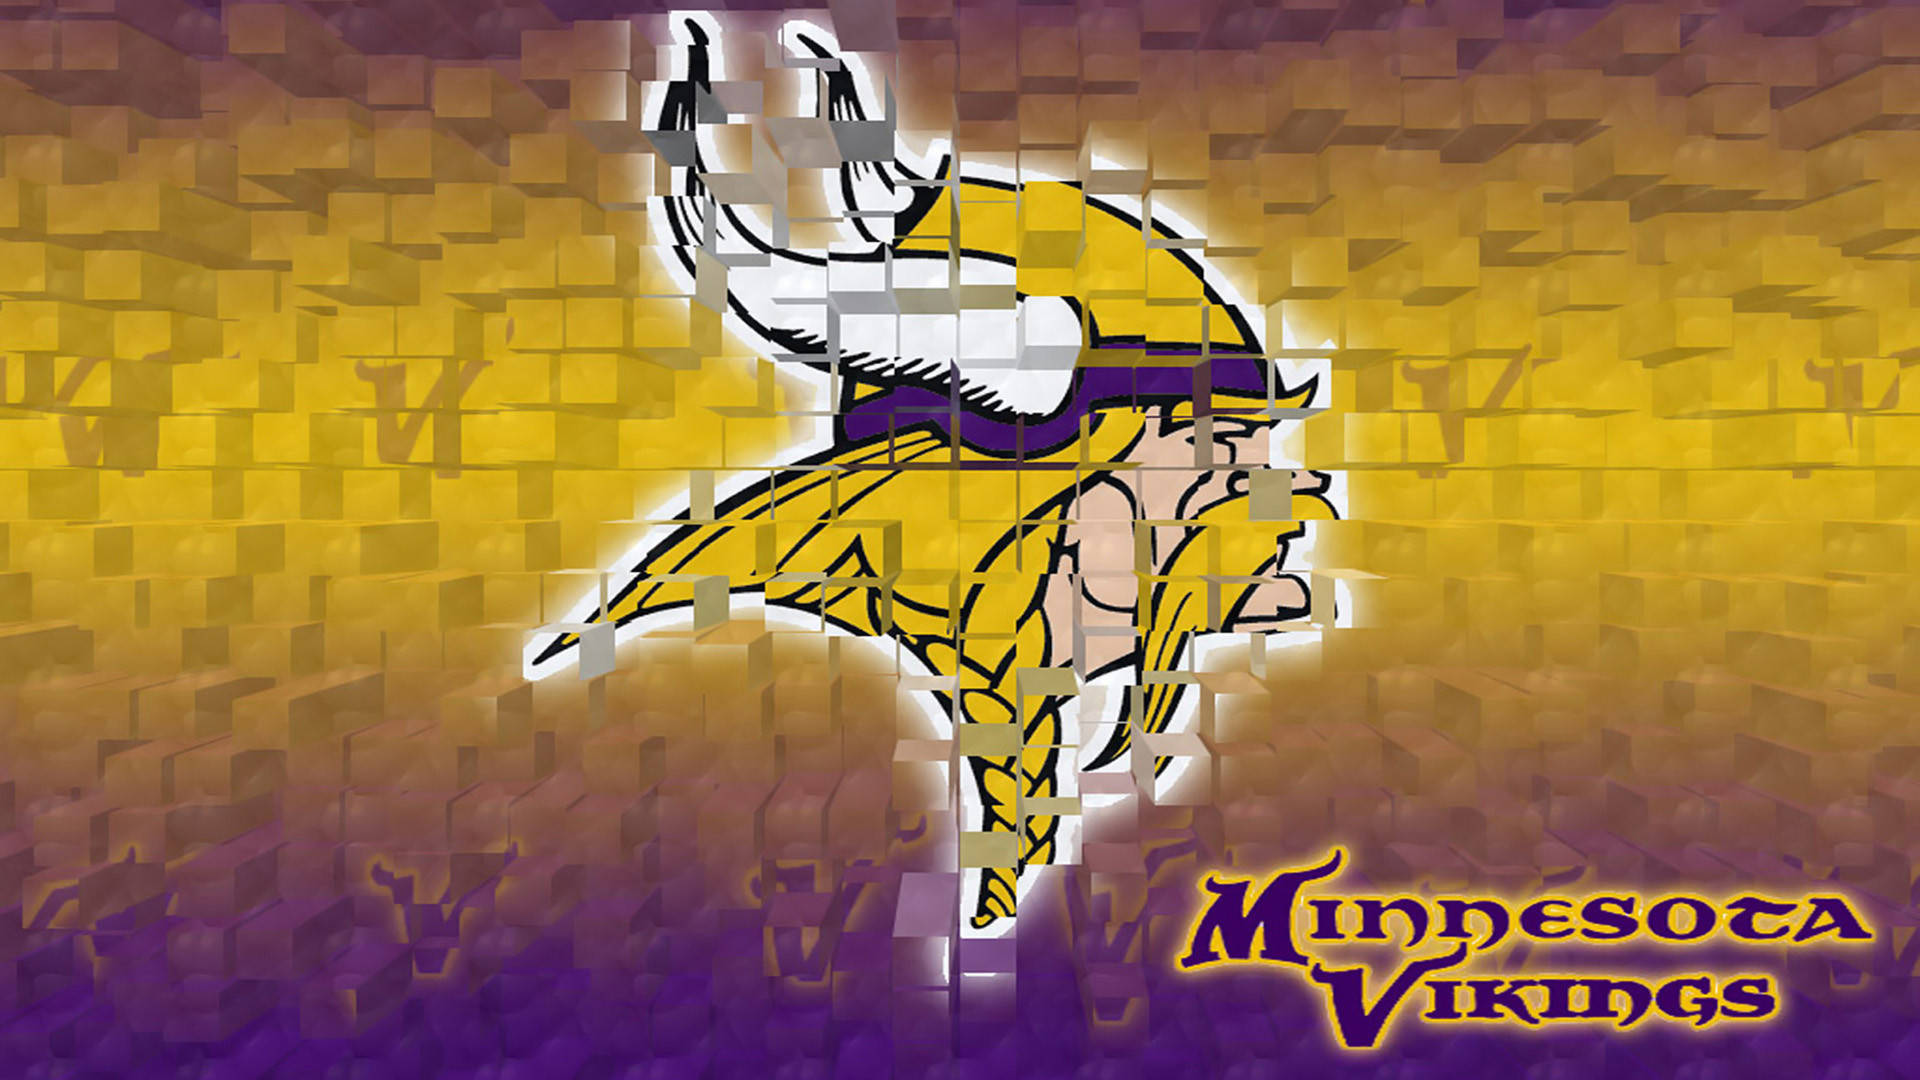 1920x1080 minnesota vikings wallpaper nfl teams hd backgrounds | HD Wallpapers |  Pinterest | Nfc north